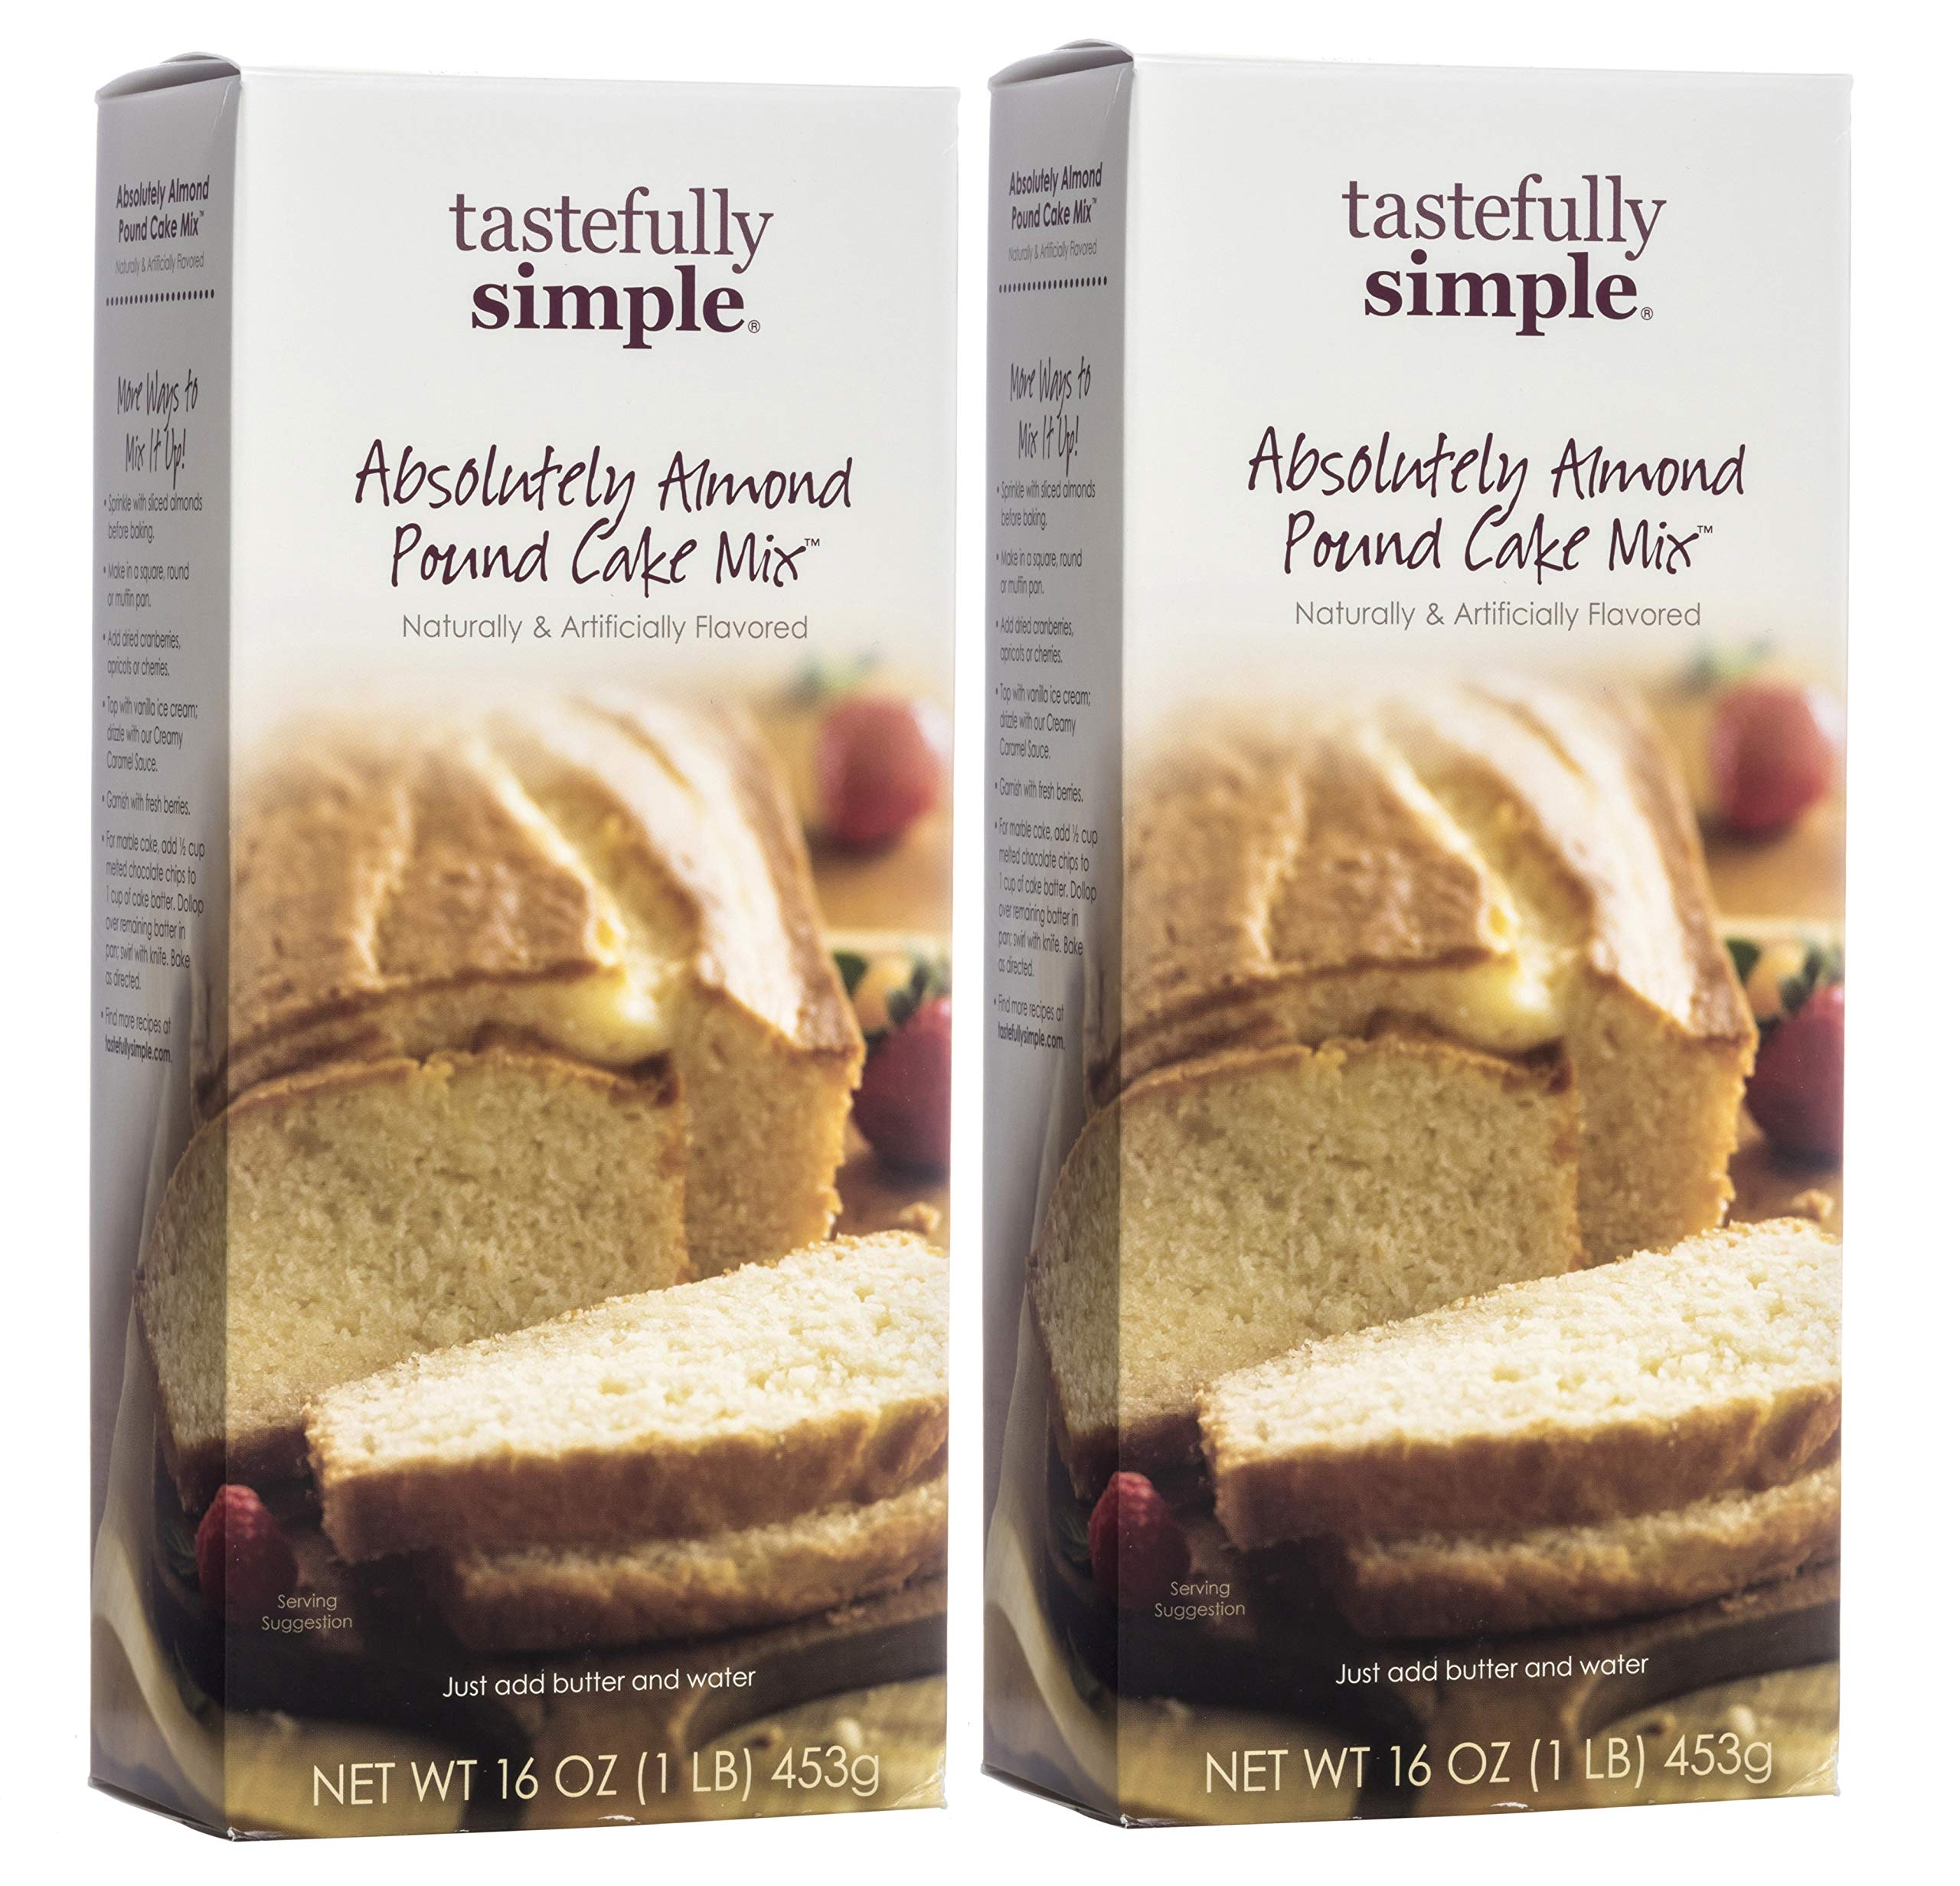 Tastefully Simple Absolutely Almond Pound Cake Mix (2 Pack)